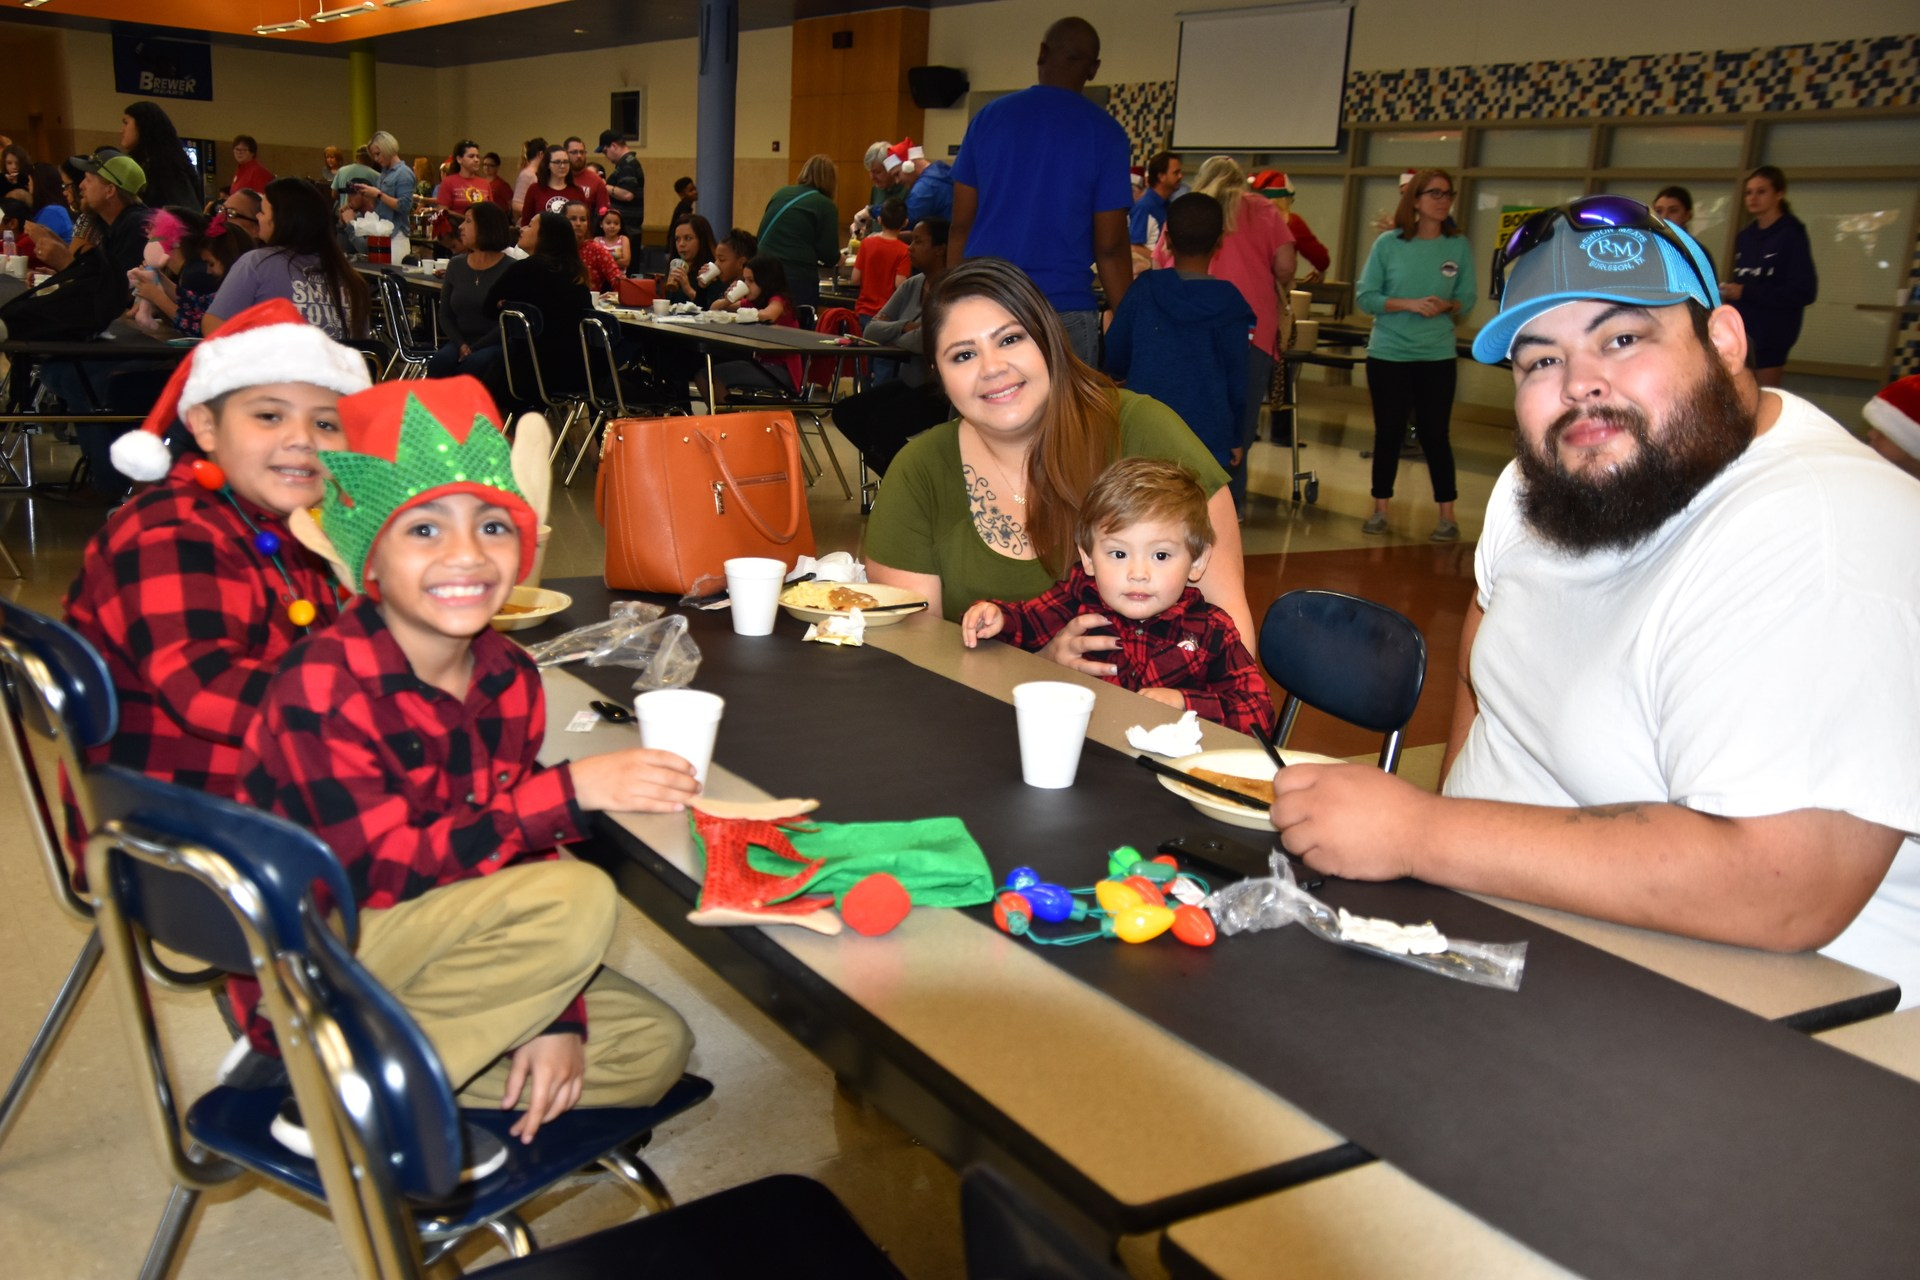 Families enjoy breakfast at Pancakes wth Santa.